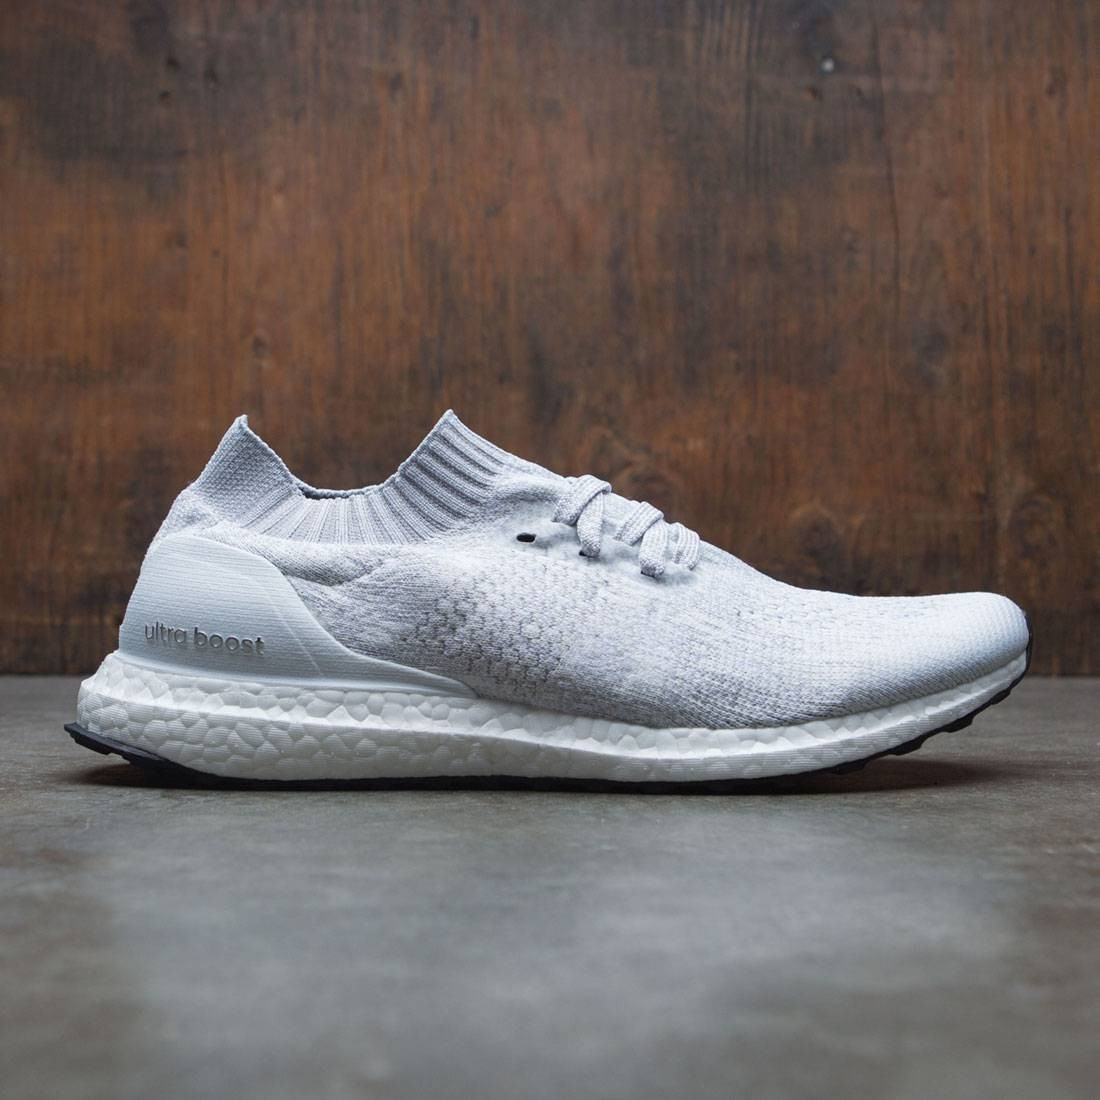 72df3aecad21 Adidas Men UltraBOOST Uncaged white white tint core black